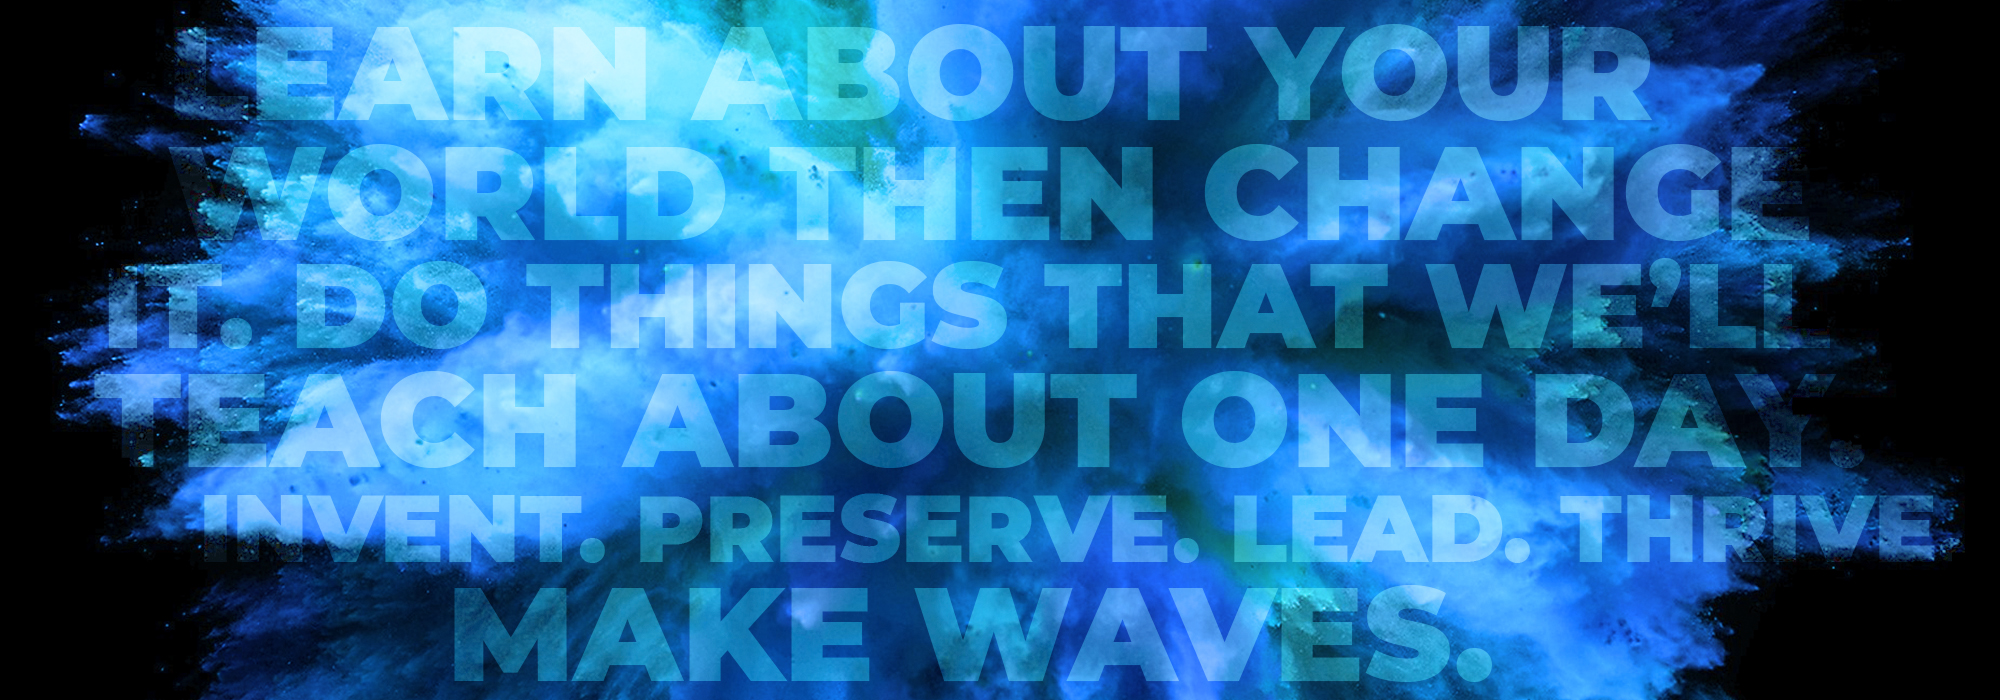 Decorative inspirational text over an exploding blue cloud on a black background.